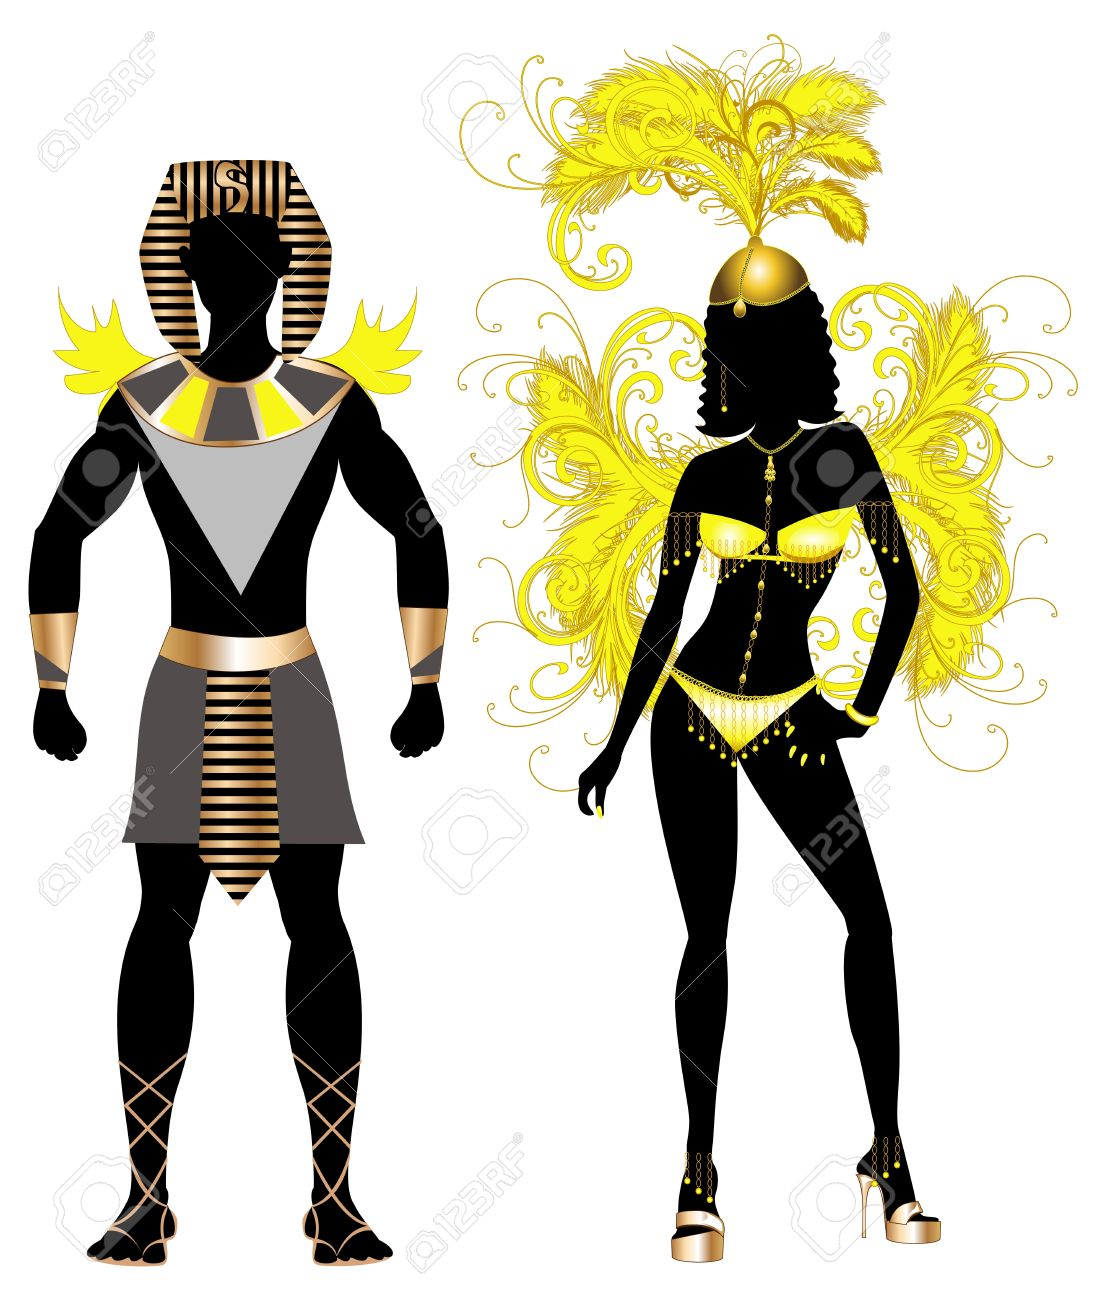 Vector - Vector Illustration Egyptian Couple for Carnival Costume Silhouettes with a man and a woman.  sc 1 st  123RF.com & Vector Illustration Egyptian Couple For Carnival Costume Silhouettes ...